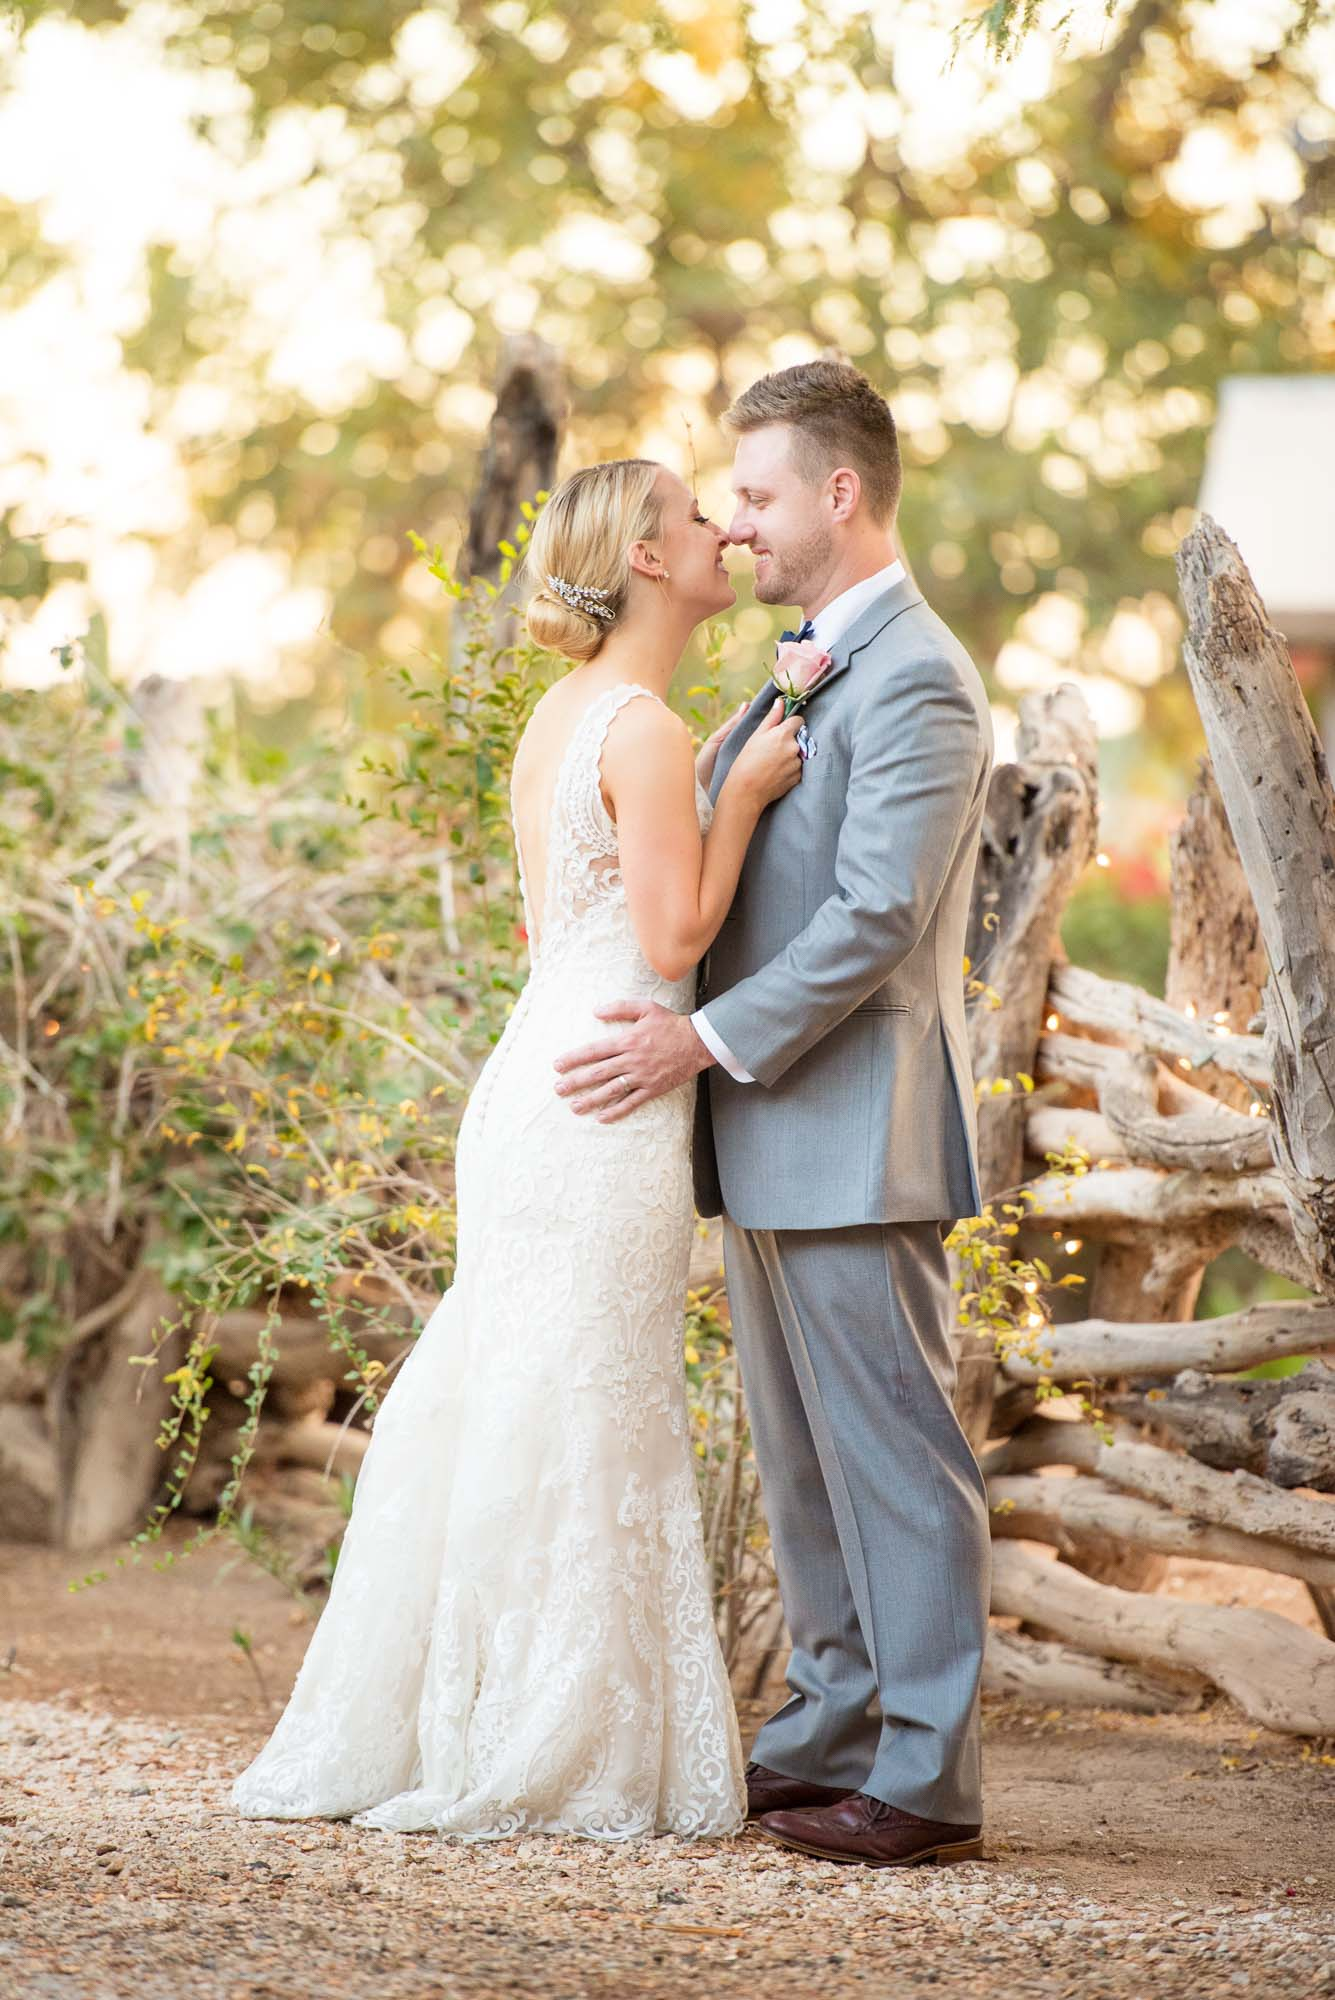 country wedding jamie jason country themed wedding dresses The newly married couple kiss within the rustic grounds of their country themed private estate